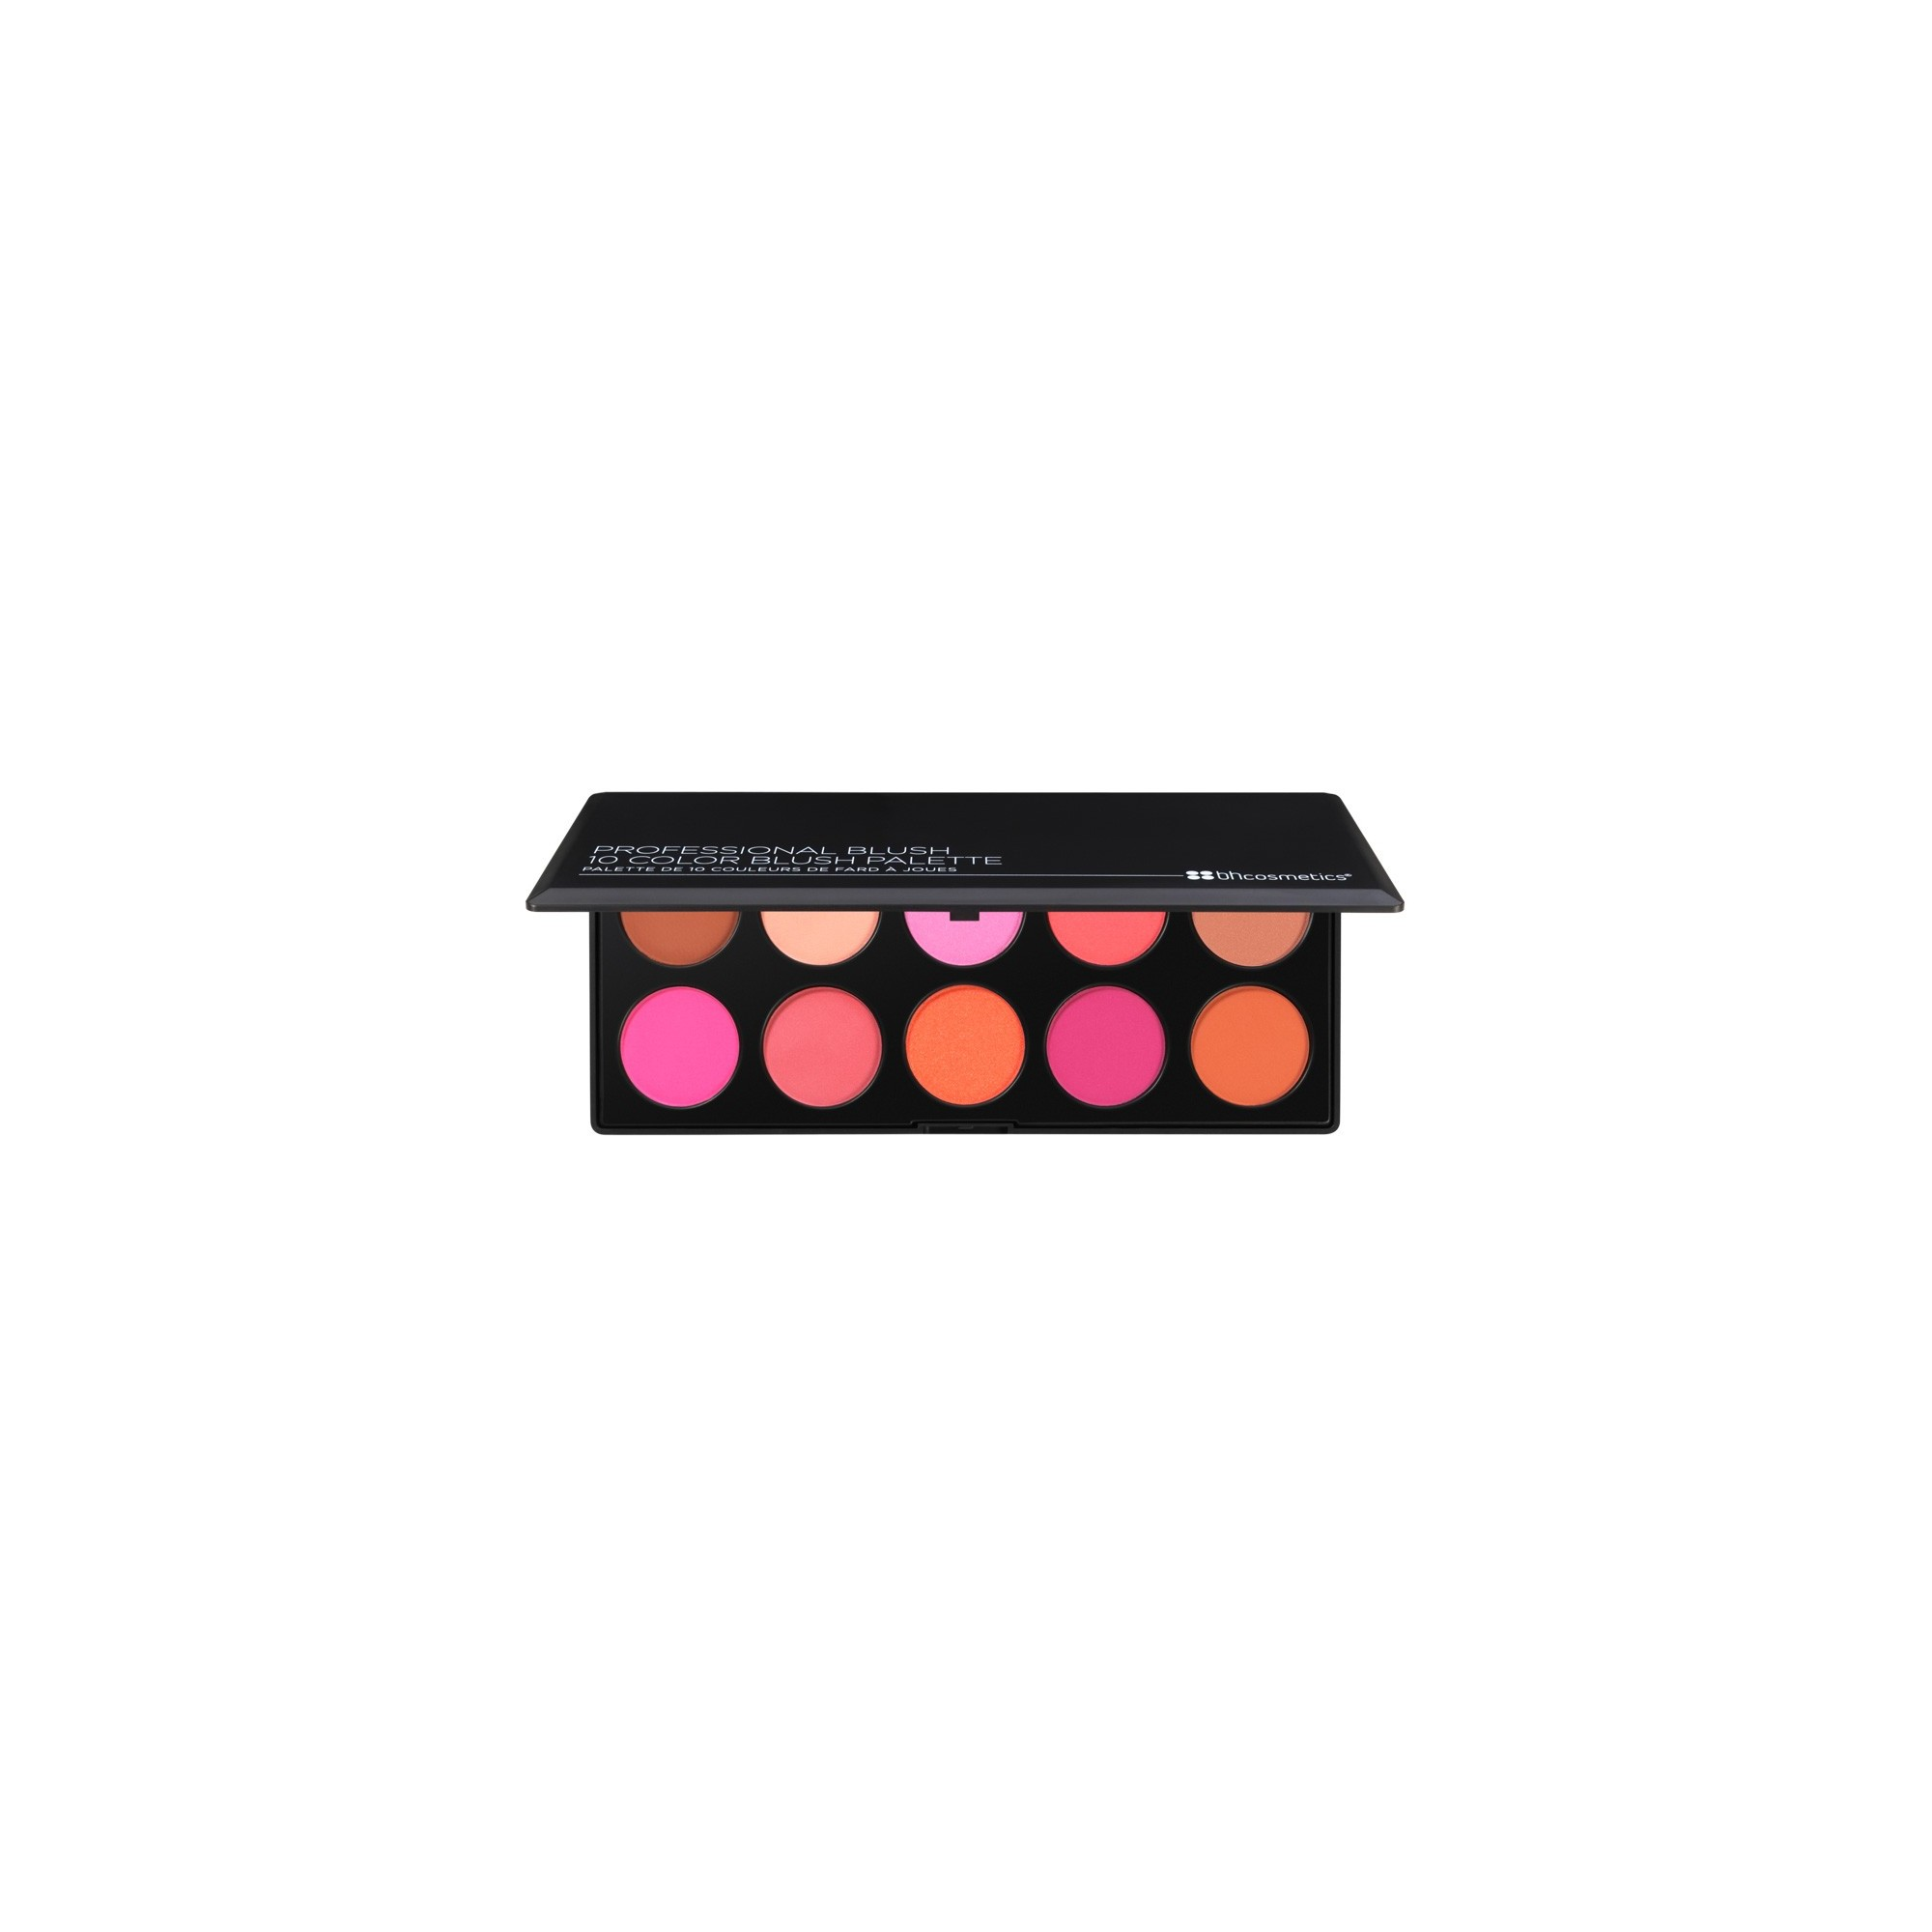 BH Cosmetics Professional Blush 10 Color Blush Palette